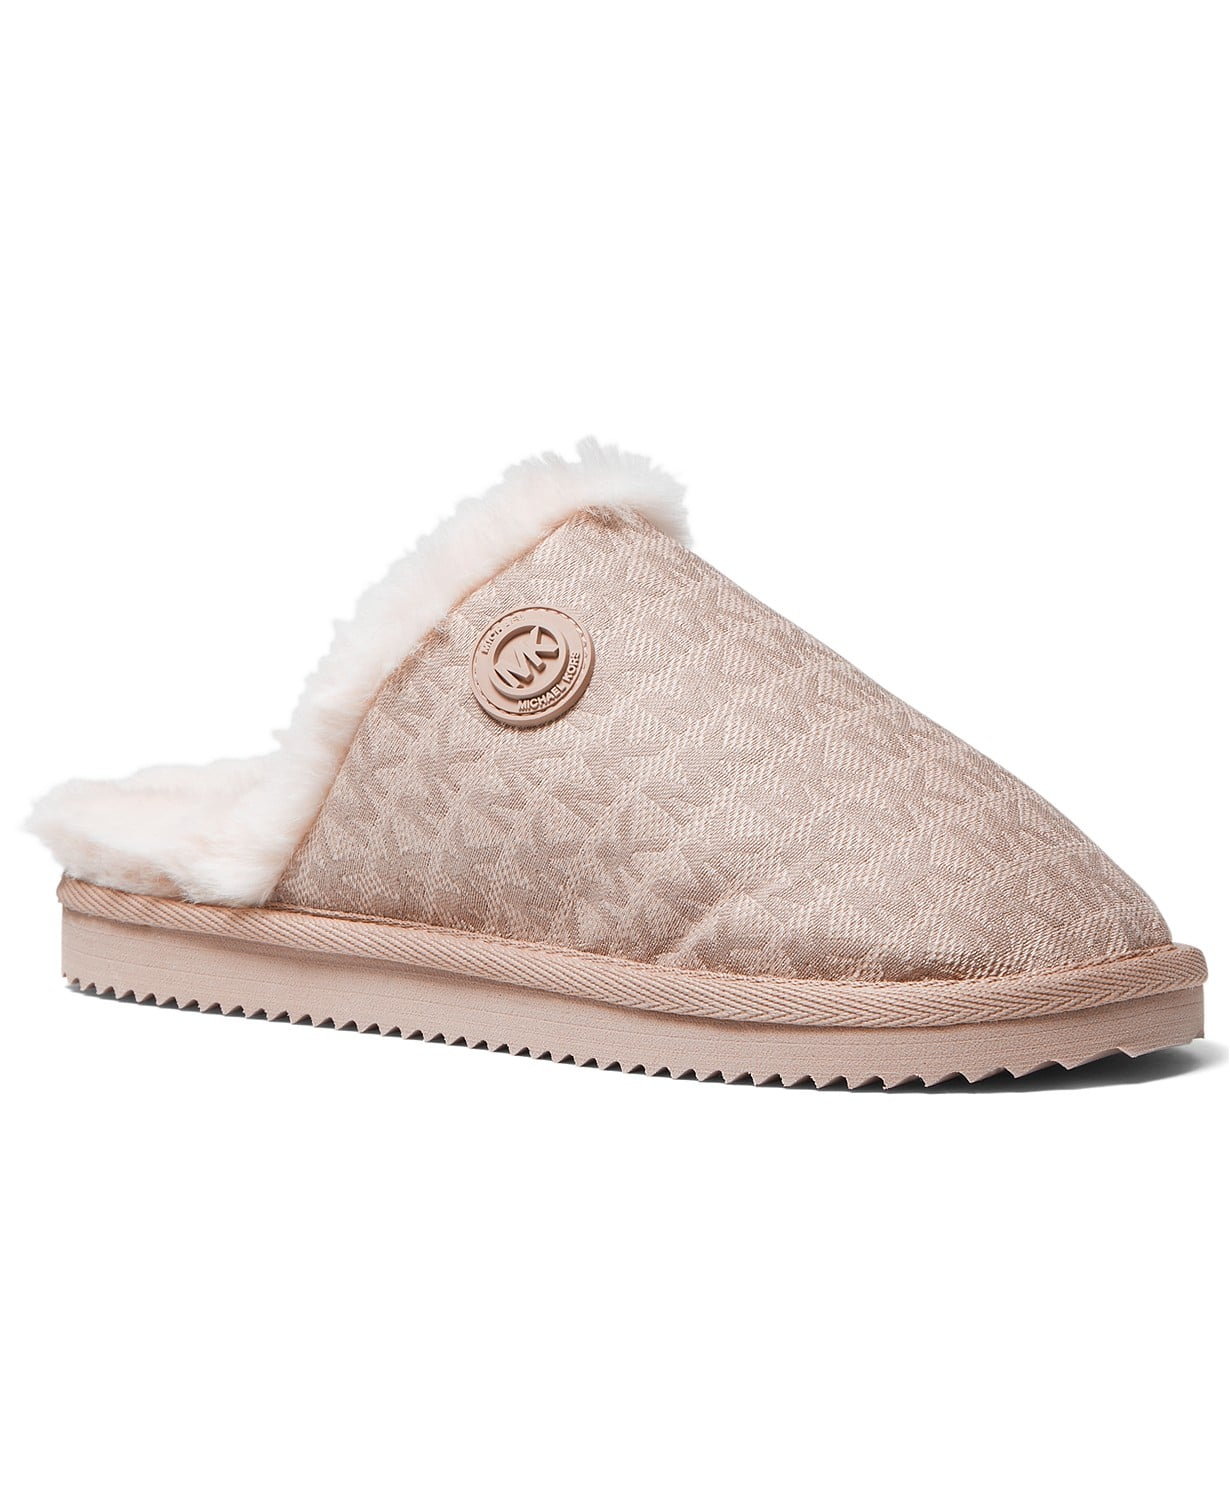 Cozy up indoors or out in the plush faux-fur and fresh textured detailing of the Janis scuff slippers from Michael Michael Kors.